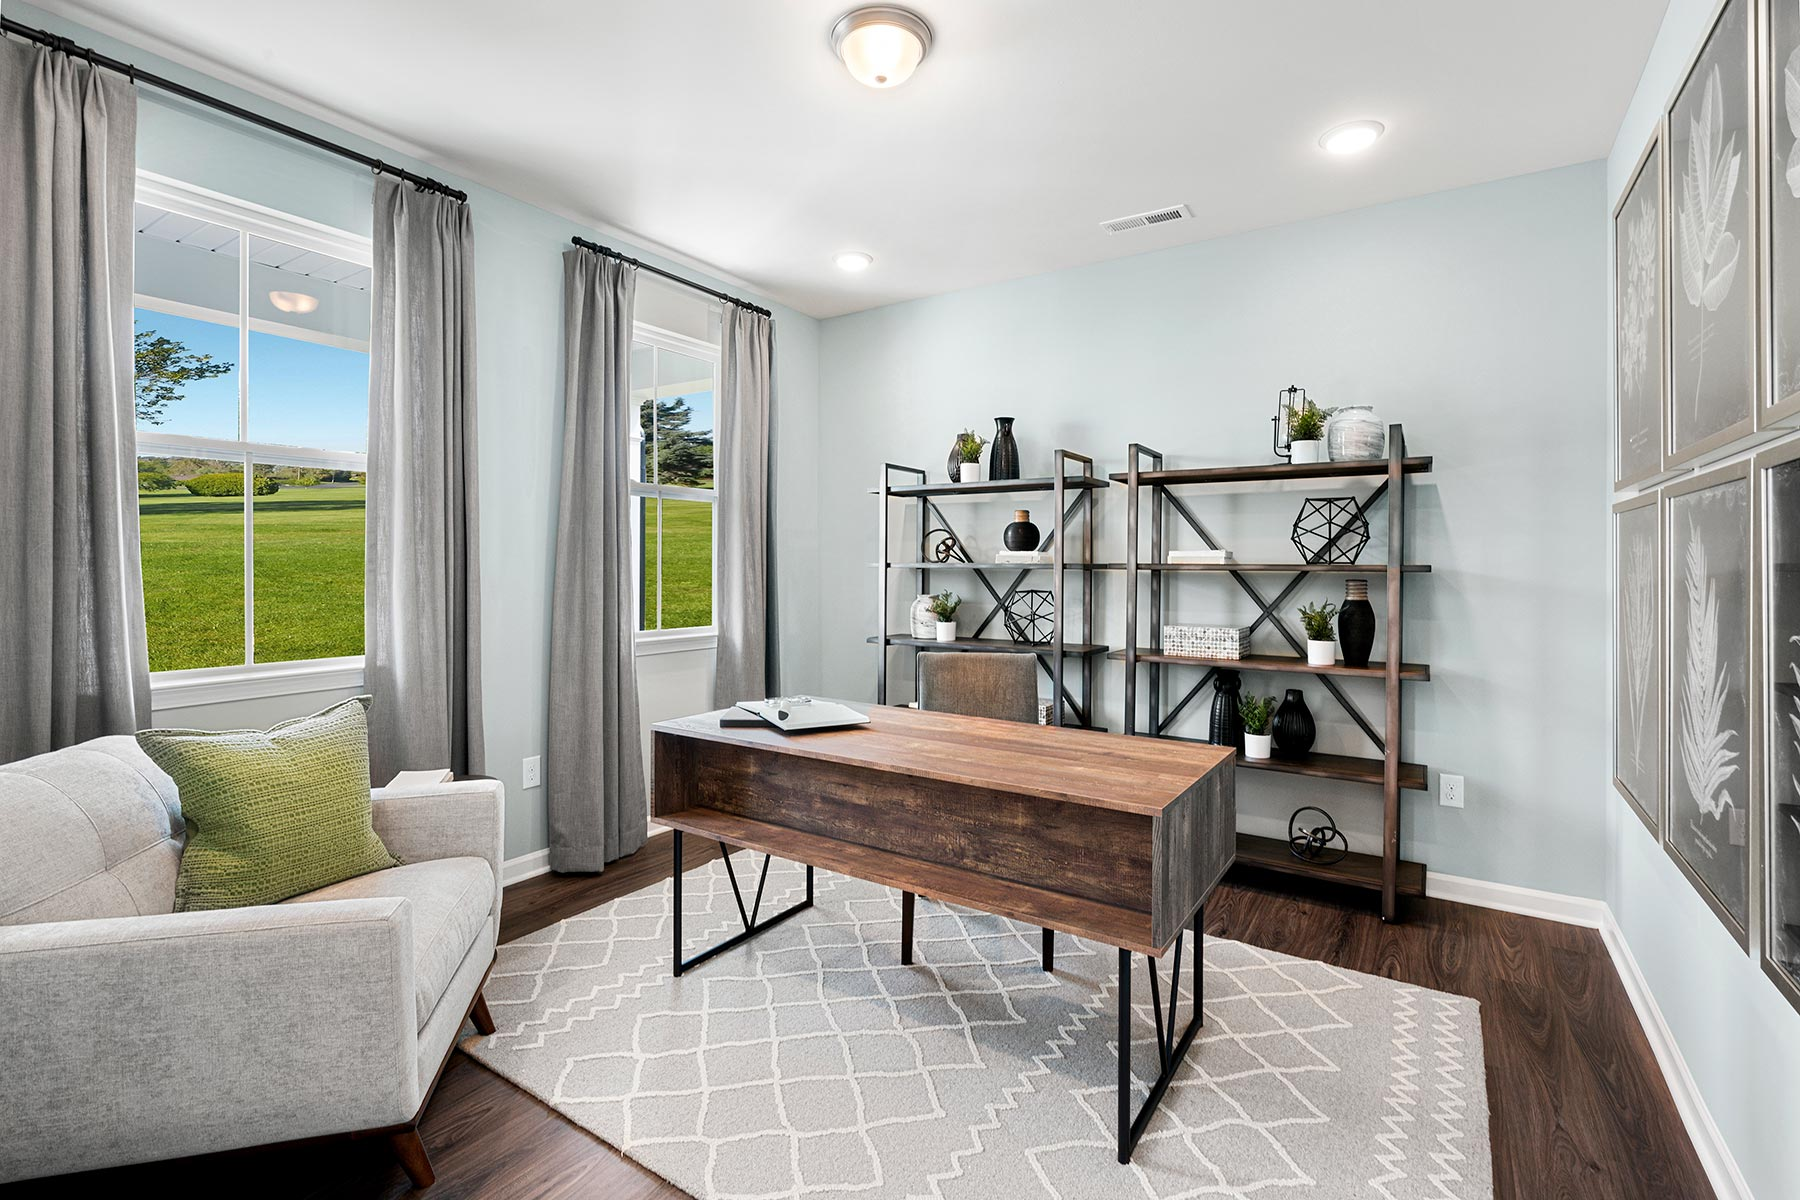 Briar Gate Study Room in Fuquay-Varina North Carolina by Mattamy Homes